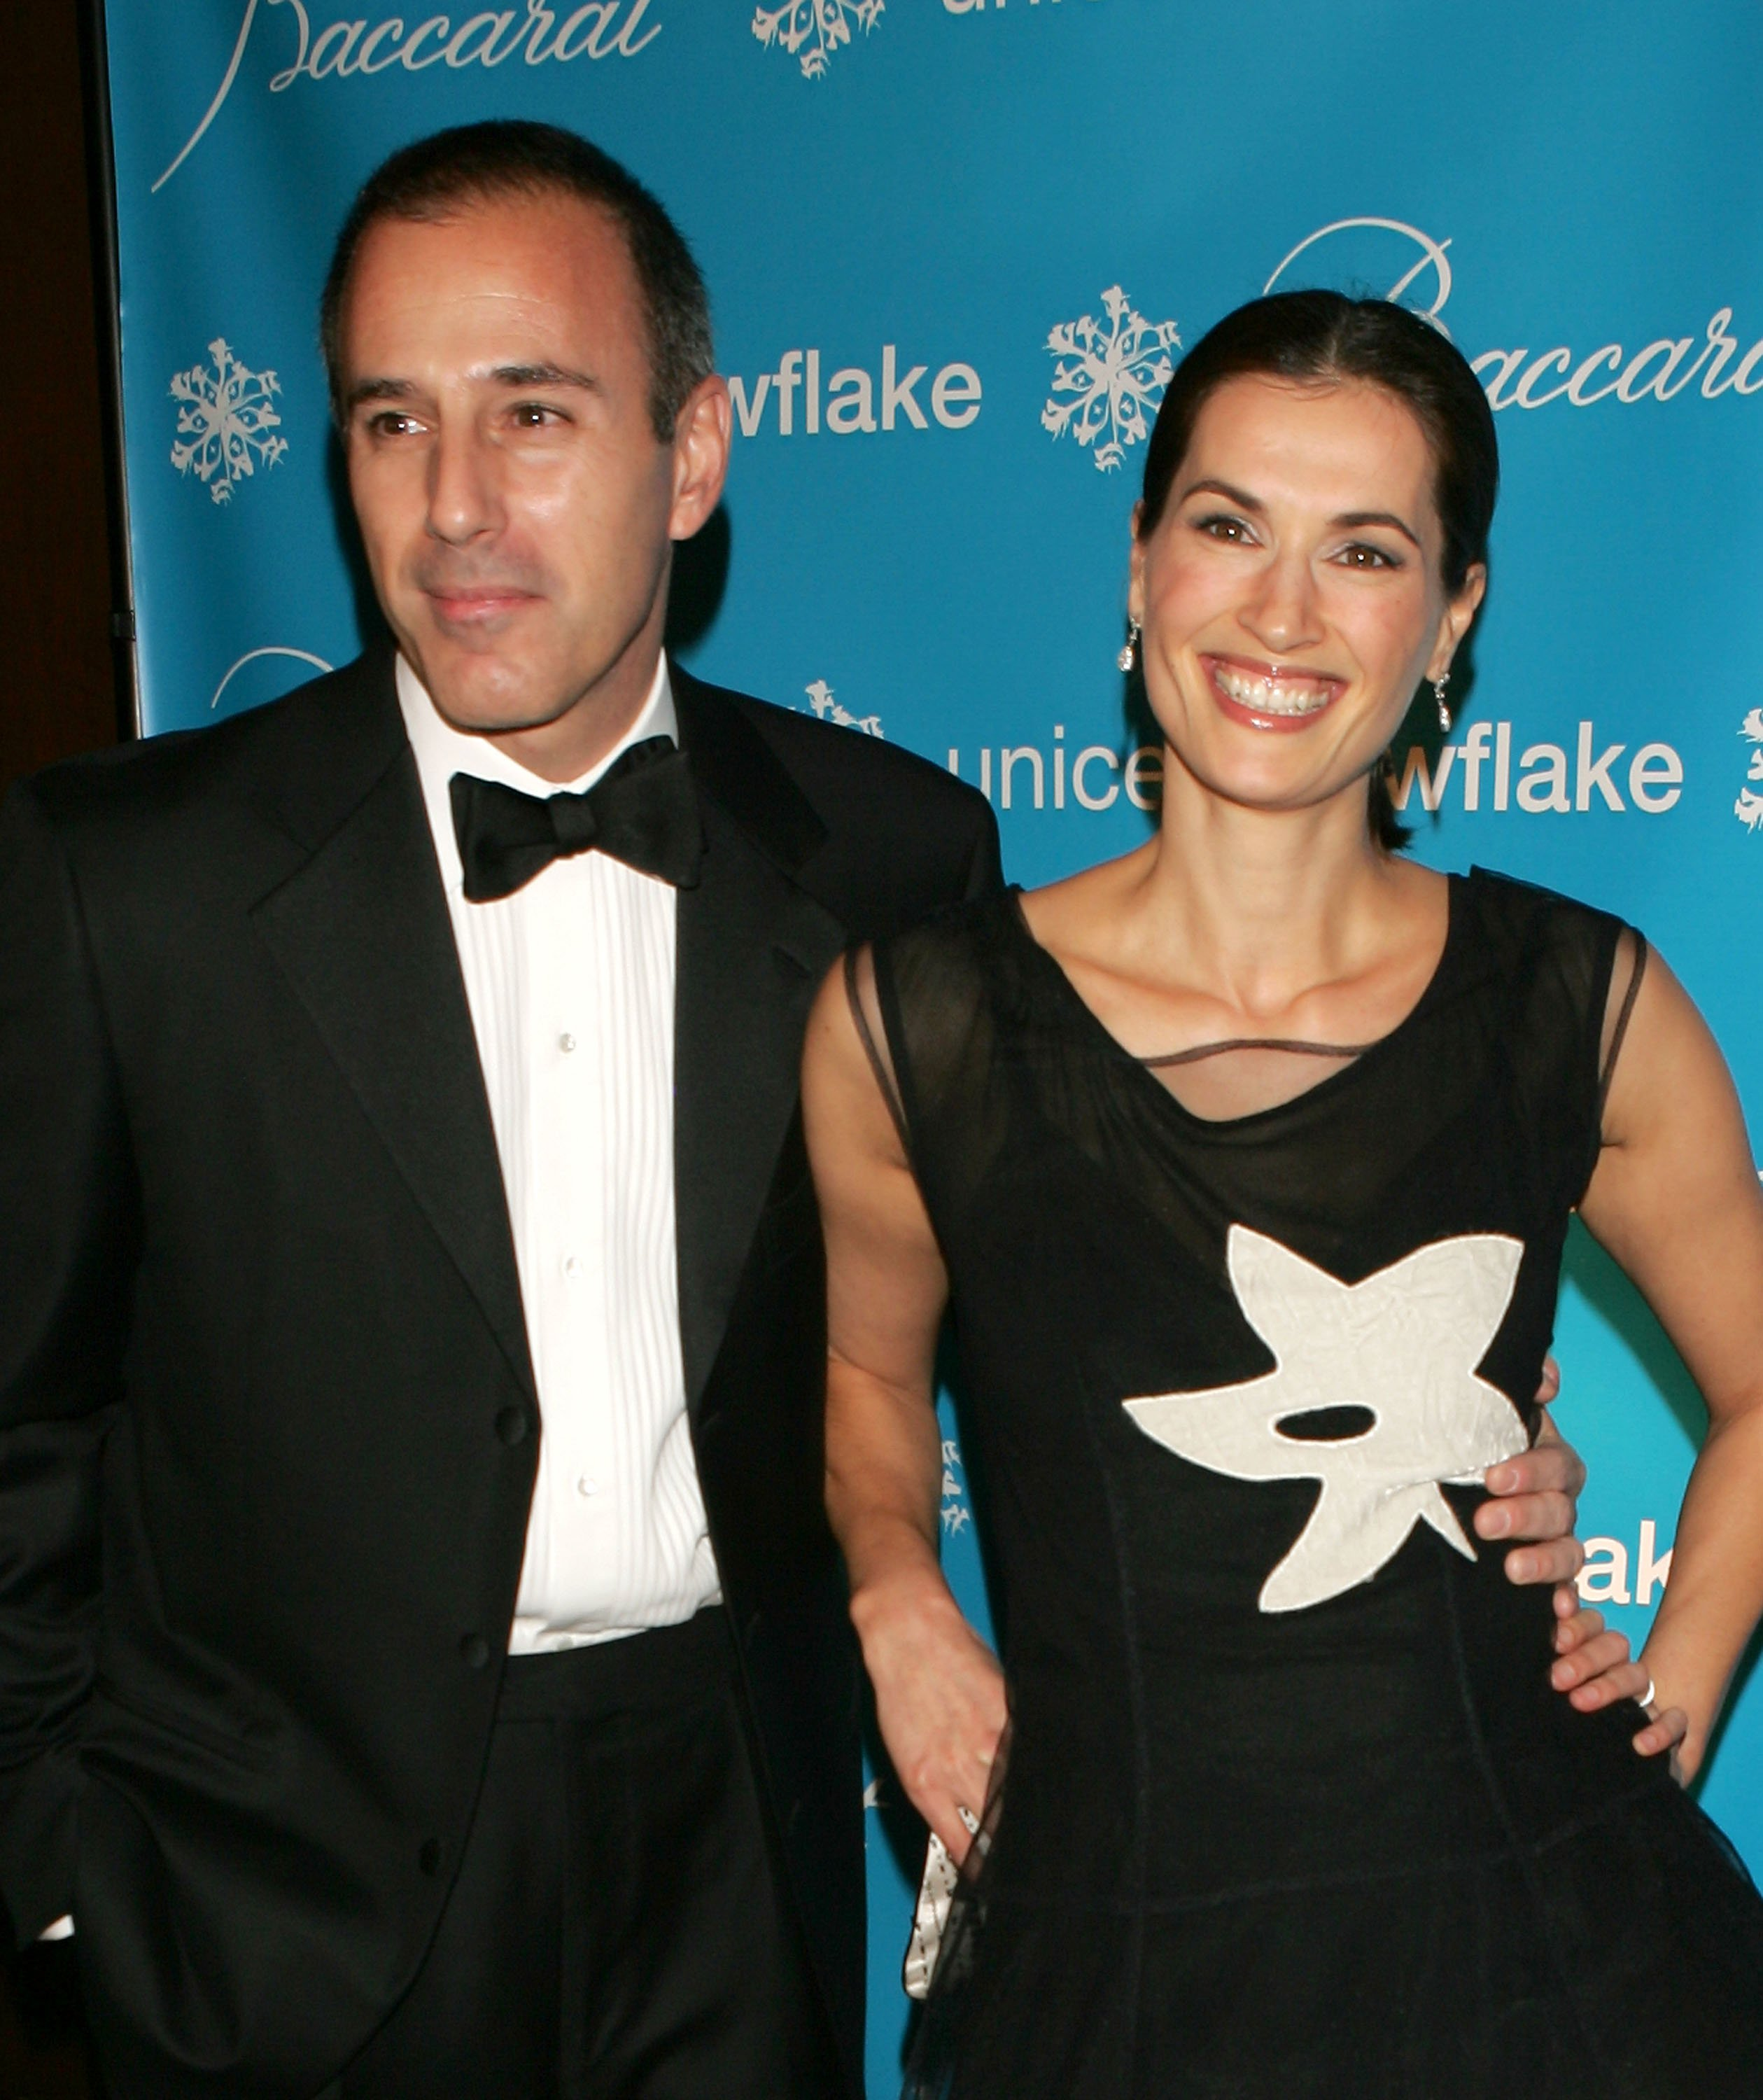 NBC Today Show anchor Matt Lauer and his wife, UNICEF Ambassador Annette Roque Lauer attend the 2nd Annual Snowflake Ball at the Waldorf-Astoria Hotel on November 28, 2005 in New York City. (Photo by Scott Gries/Getty Images)